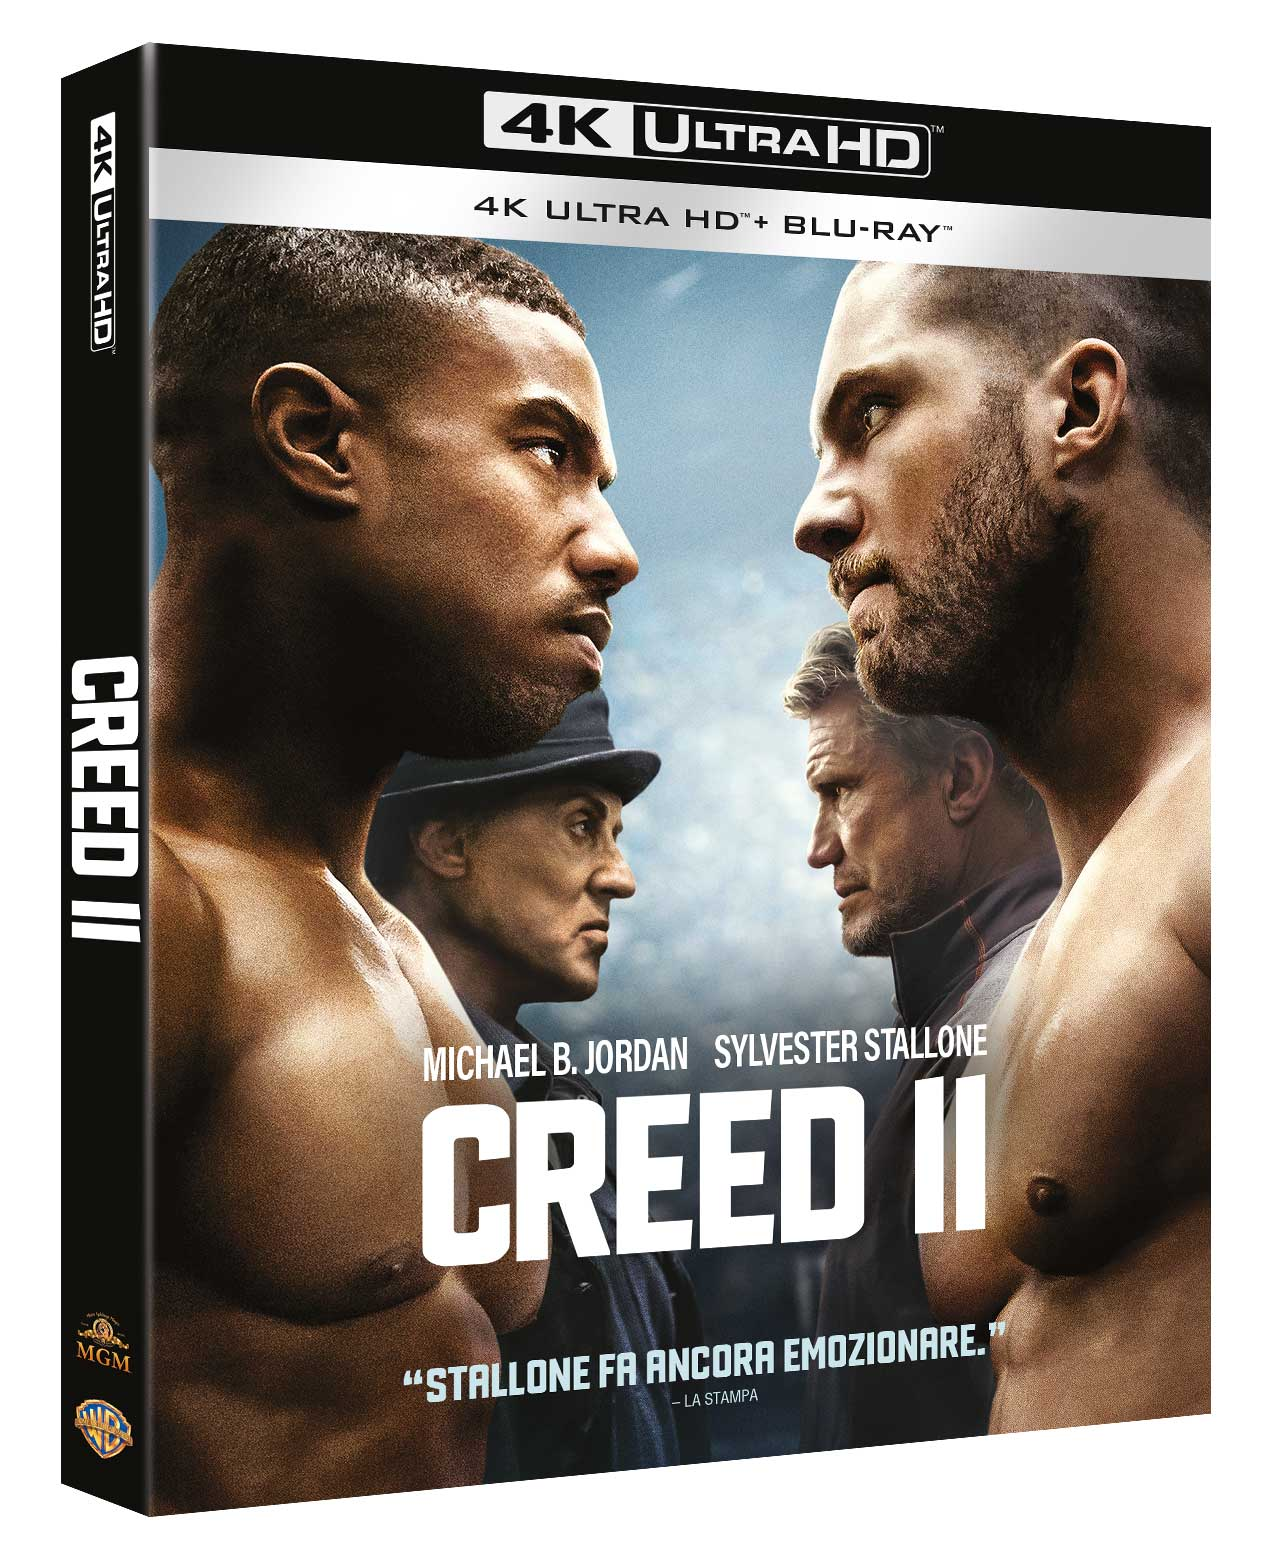 CREED 2 (BLU-RAY 4K)